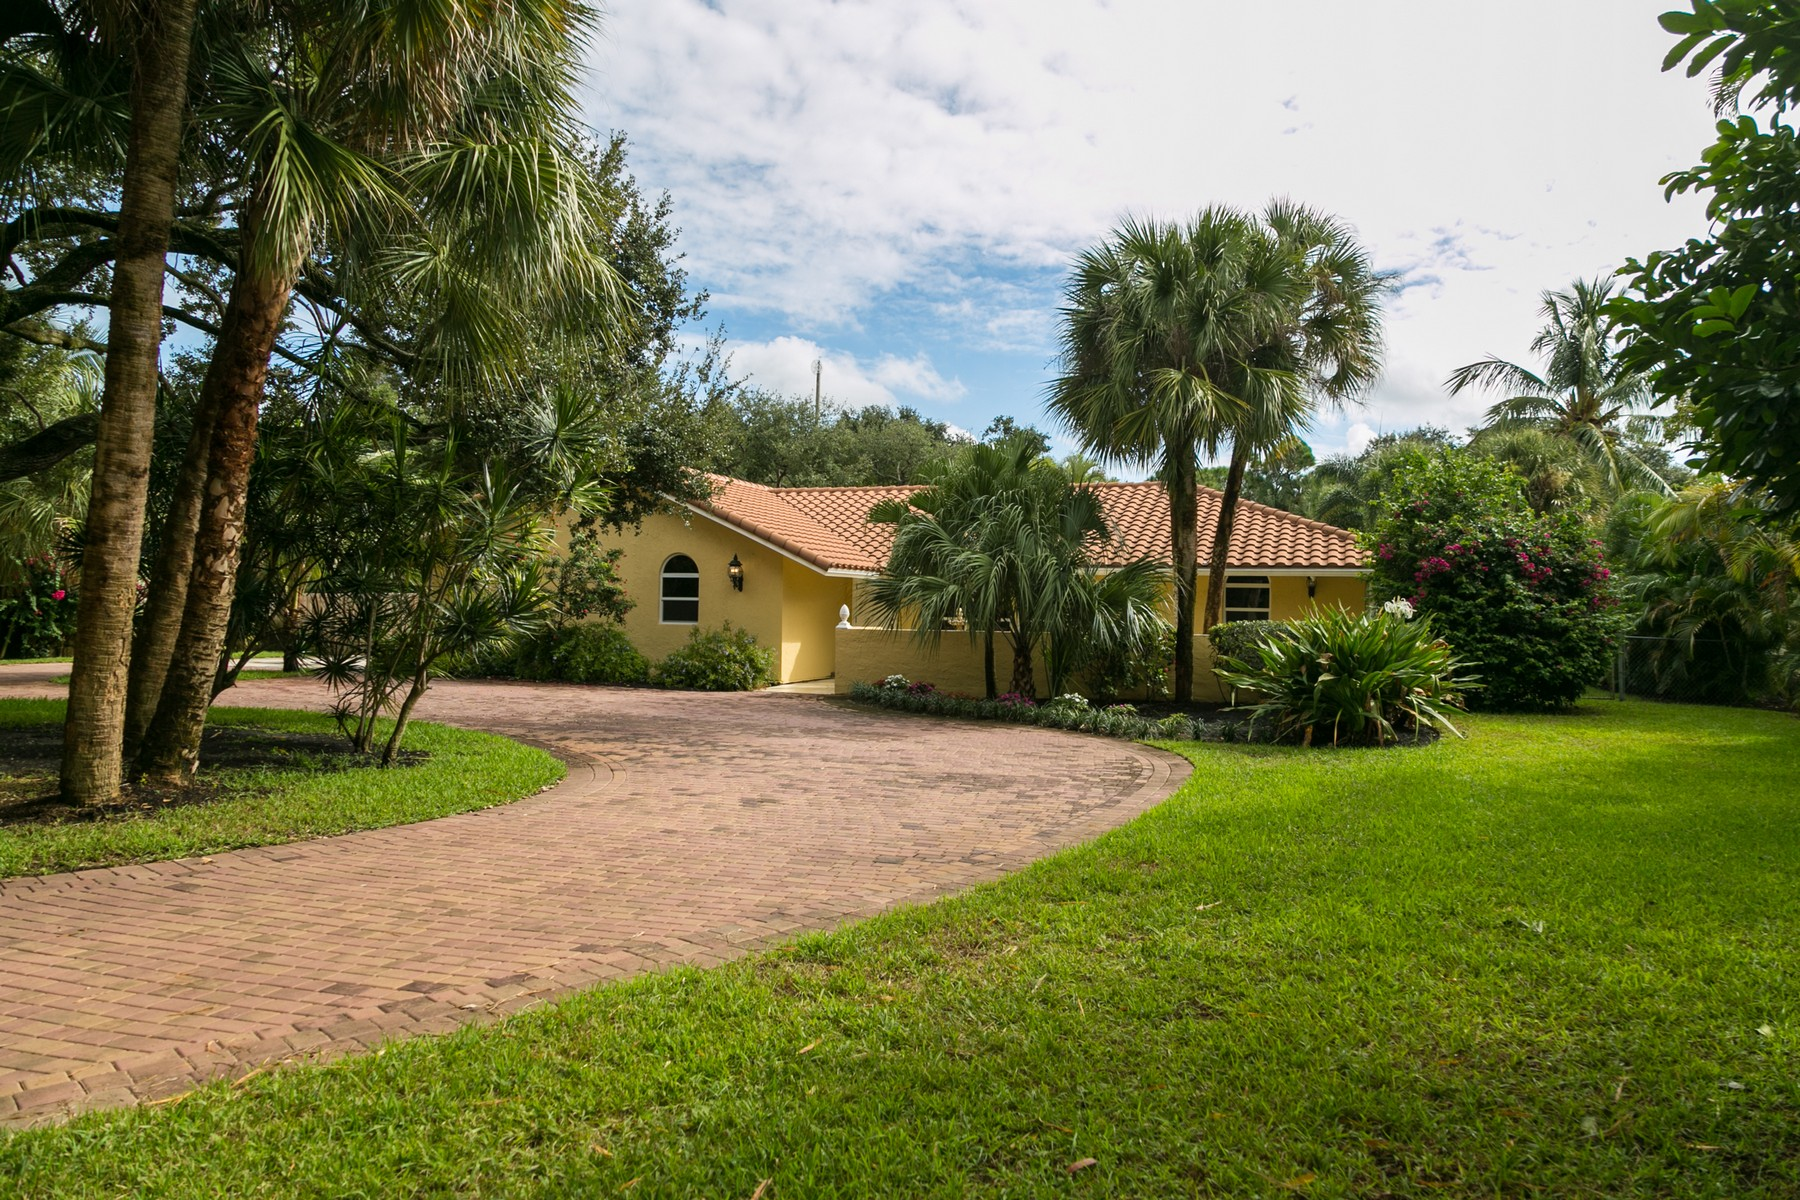 Property For Sale at 13214 Barwick Rd , Delray Beach, FL 33445